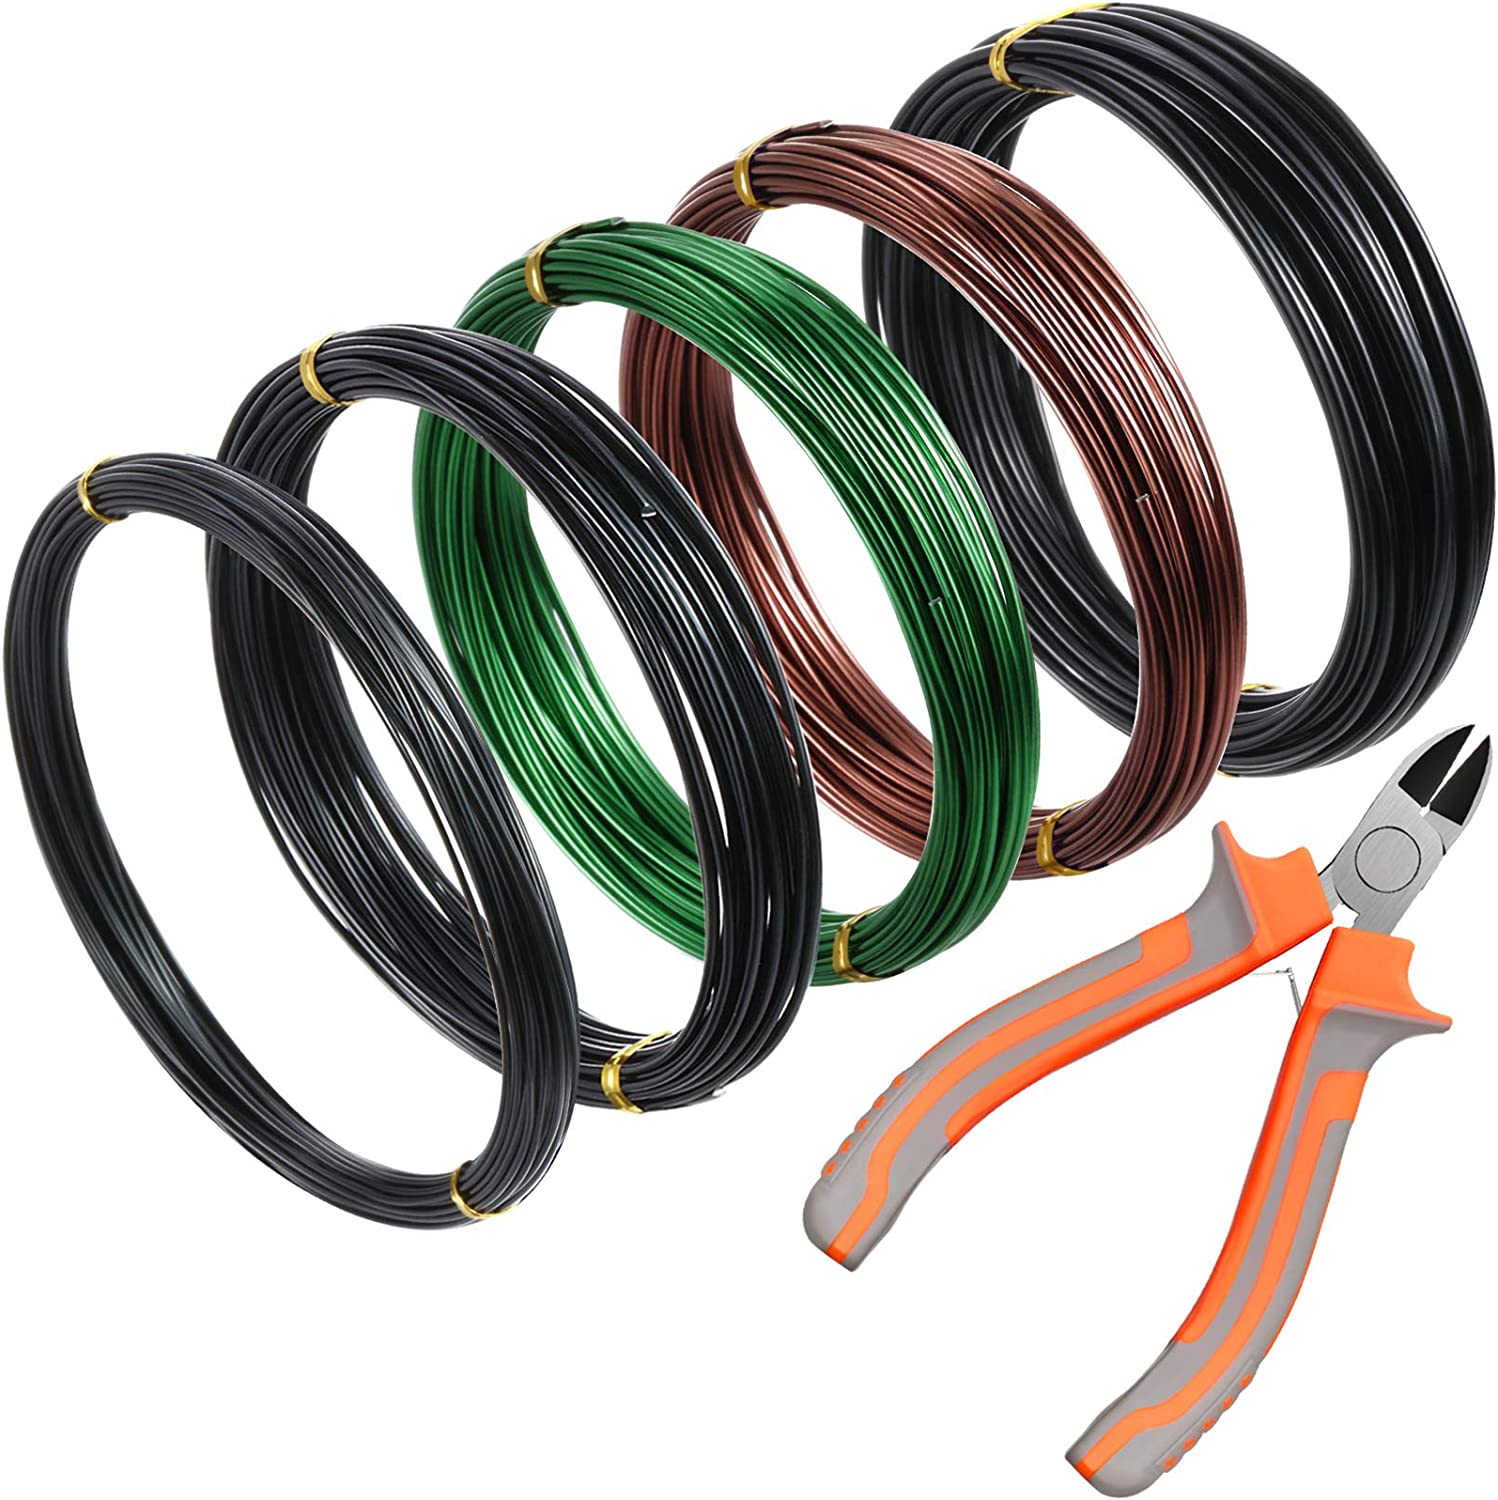 Amazon Com 5 Roll Tree Training Wires 160 Feet Total With Bonsai Wire Cutter Anodized Aluminum Wire 1 1 5 2 0 Mm Training Wire For Holding Bonsai Branches Small Trunks Black Green Brown Garden Outdoor